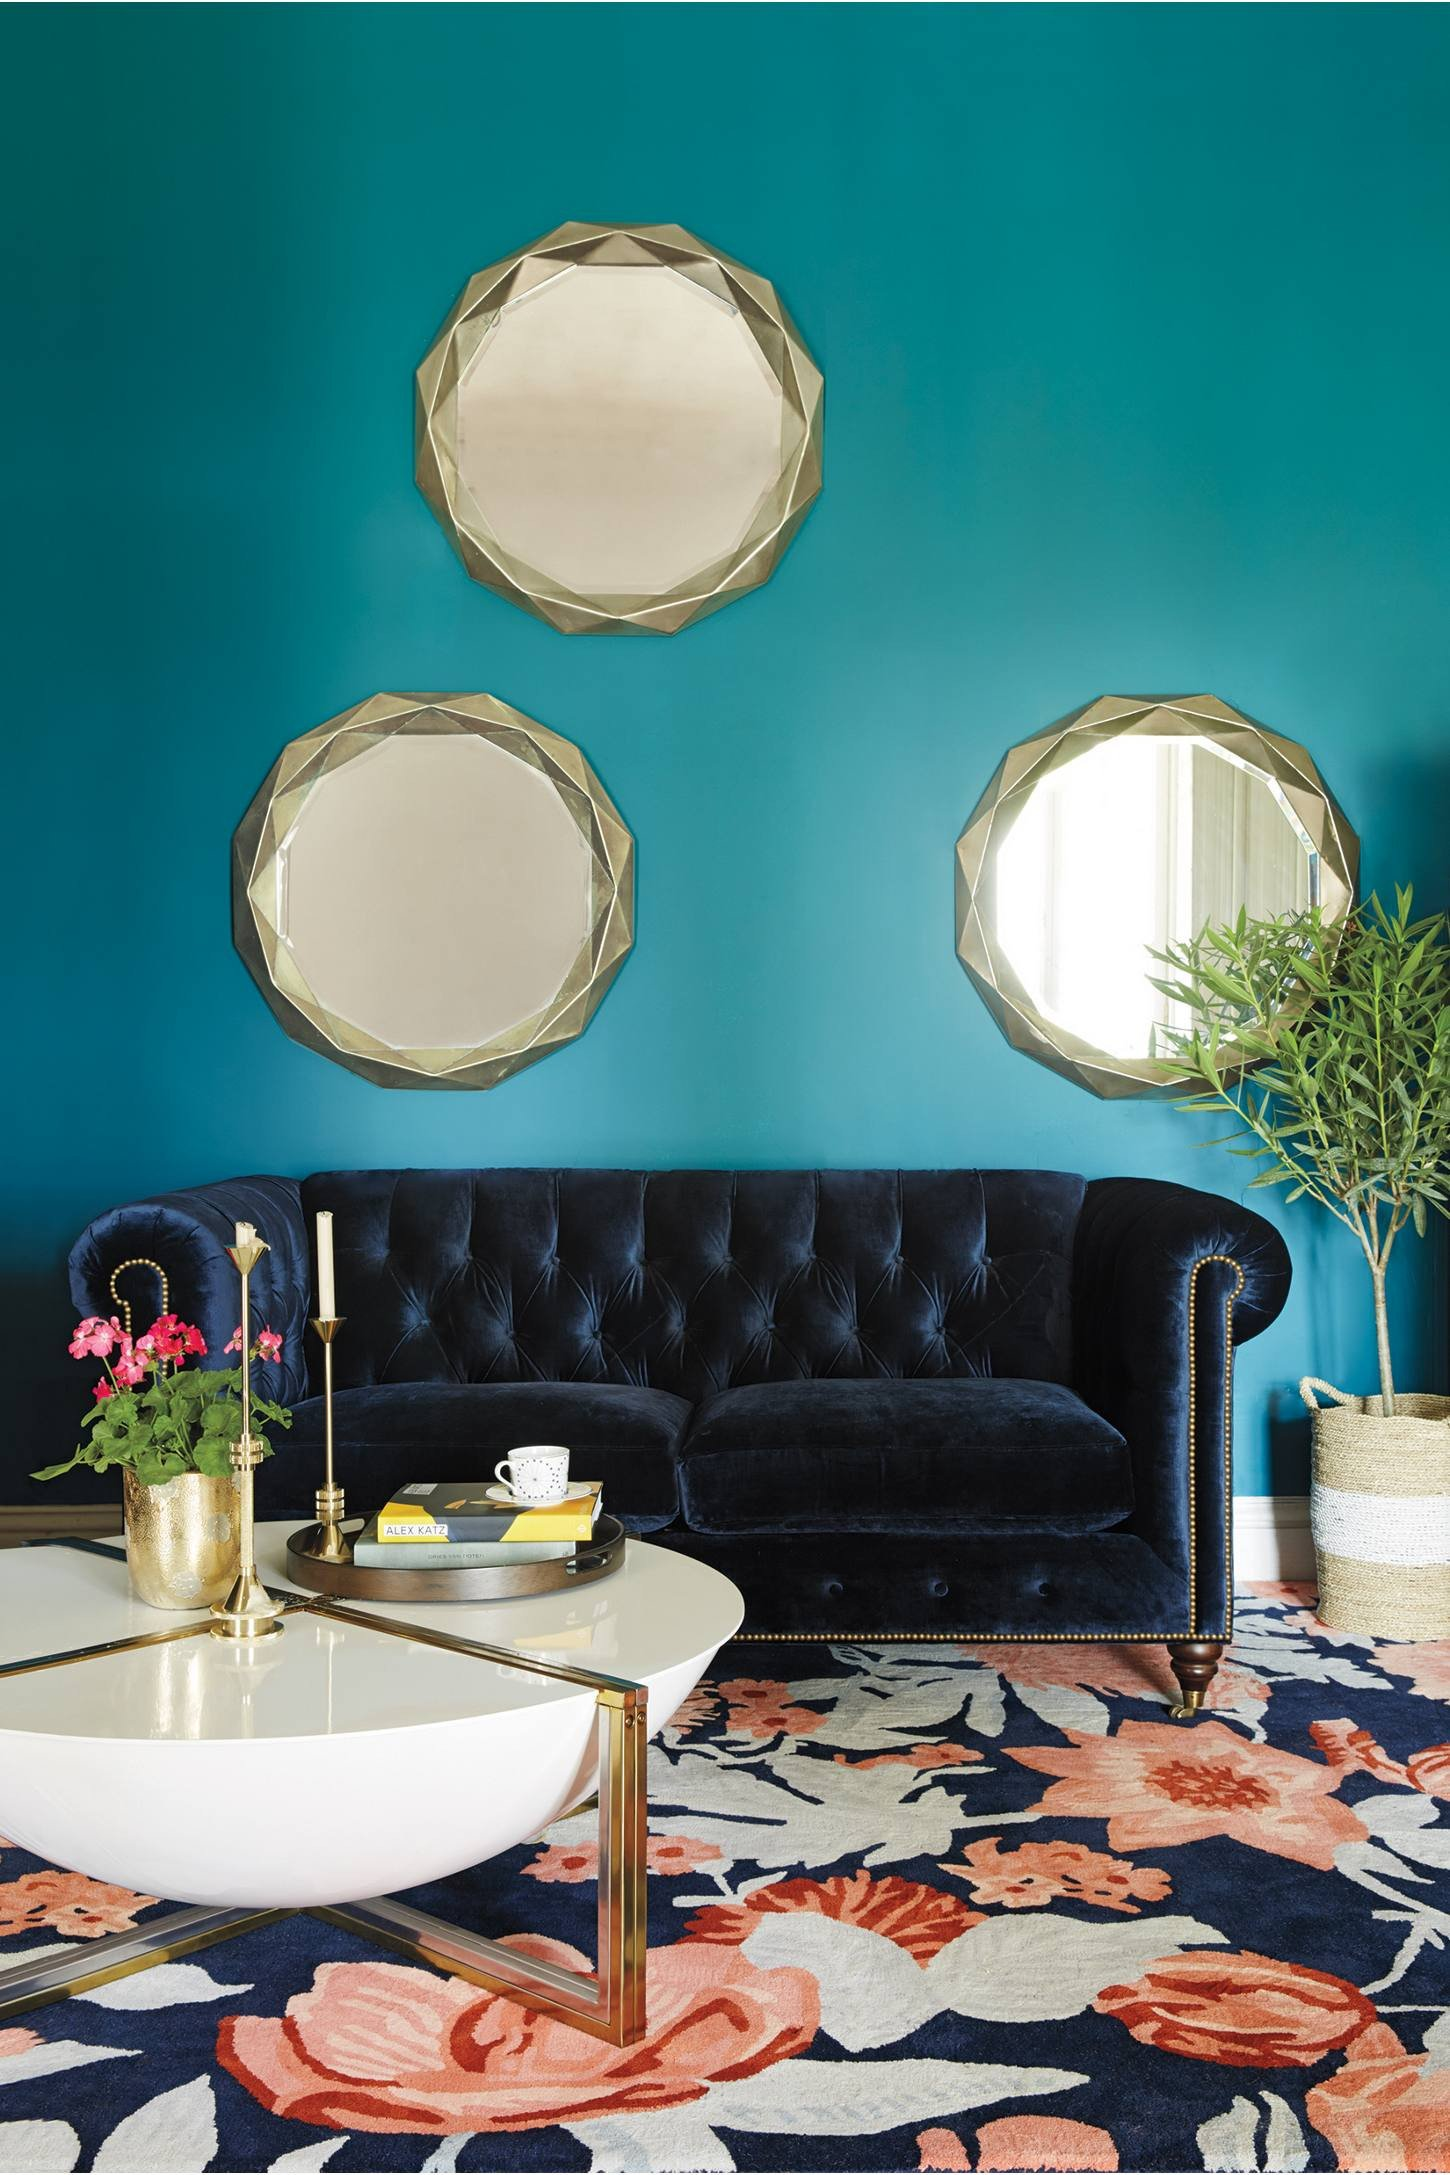 Different Styles Of Home Decor Best Of 6 Velvet Home Decor Ideas to Copy now